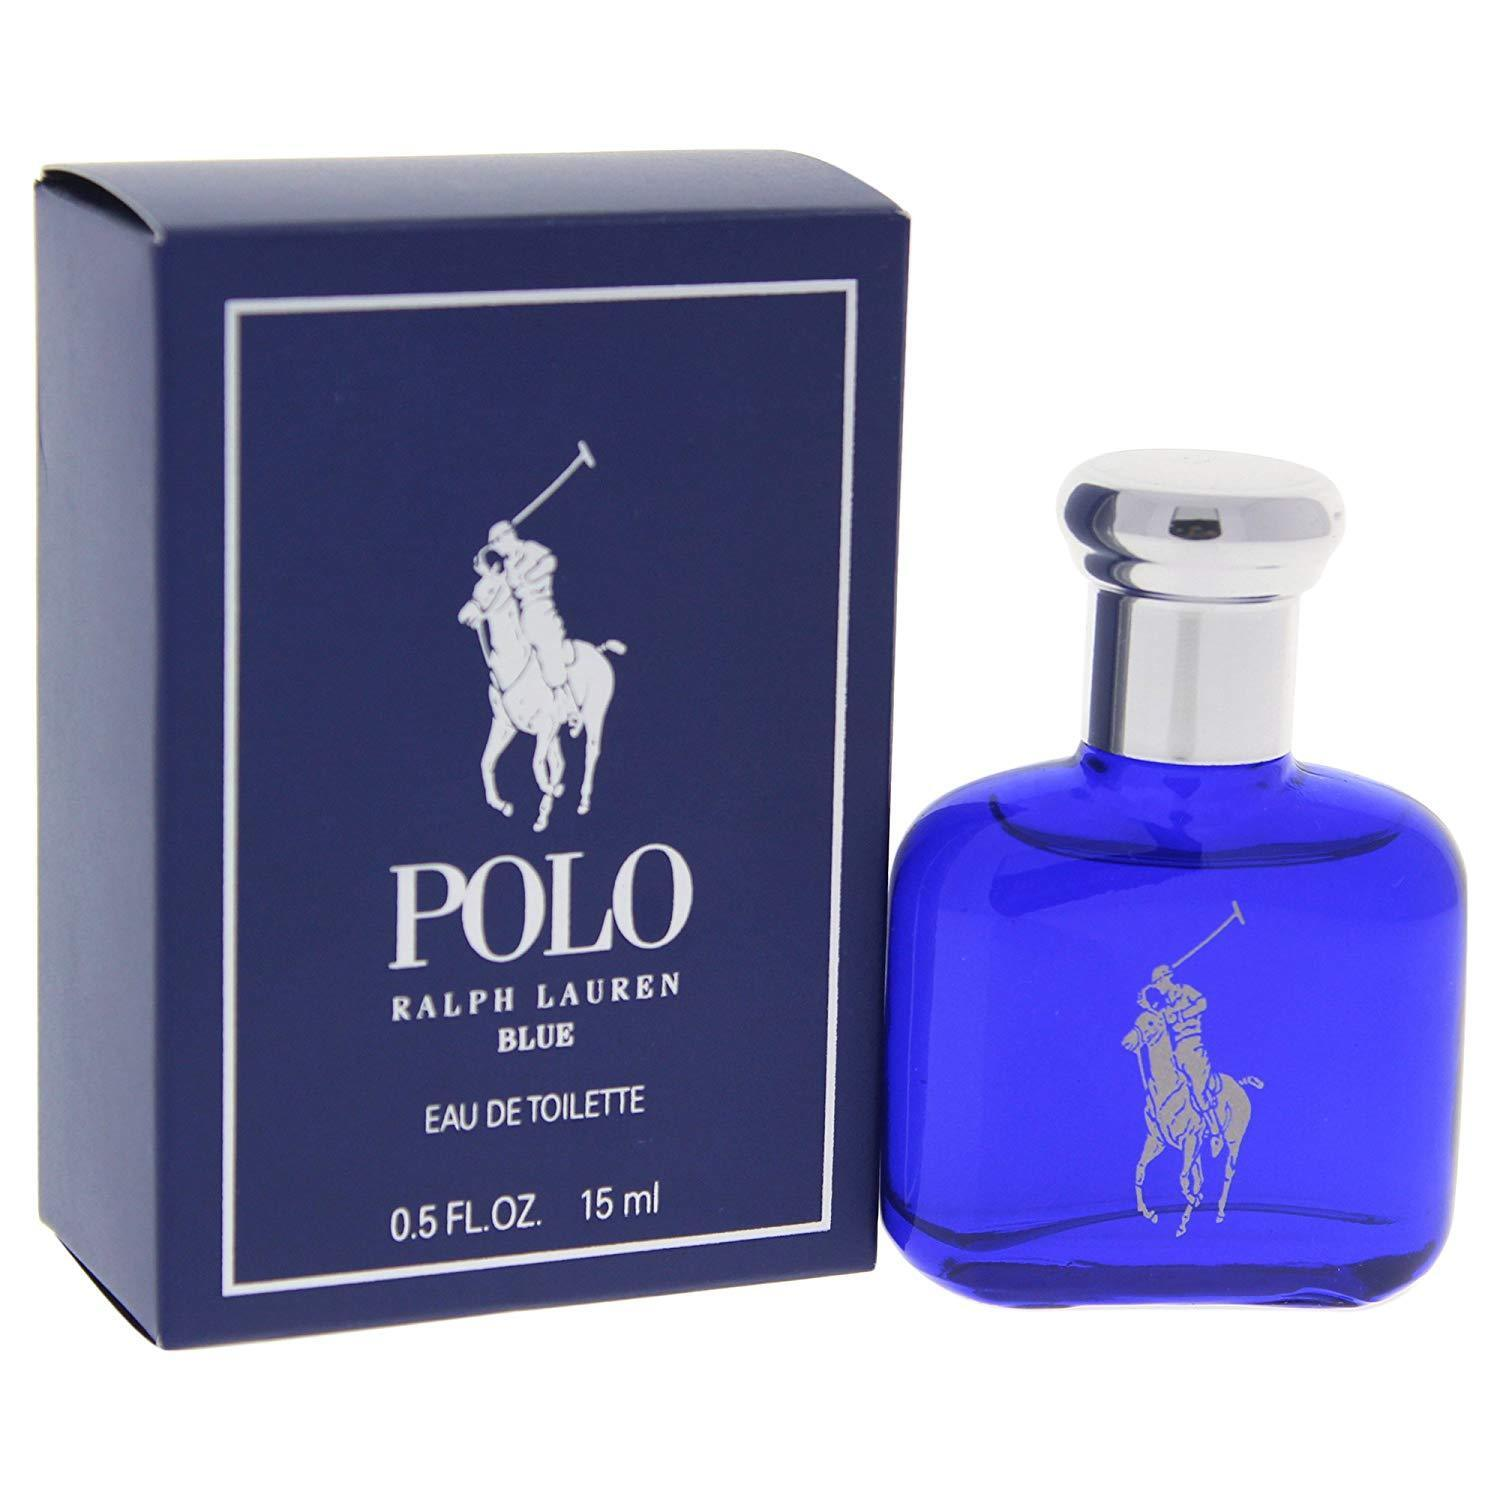 Polo Blue Cologne Perfume Ralph Lauren 0.5 oz 15 ml EDT Splash For Men New Boxed